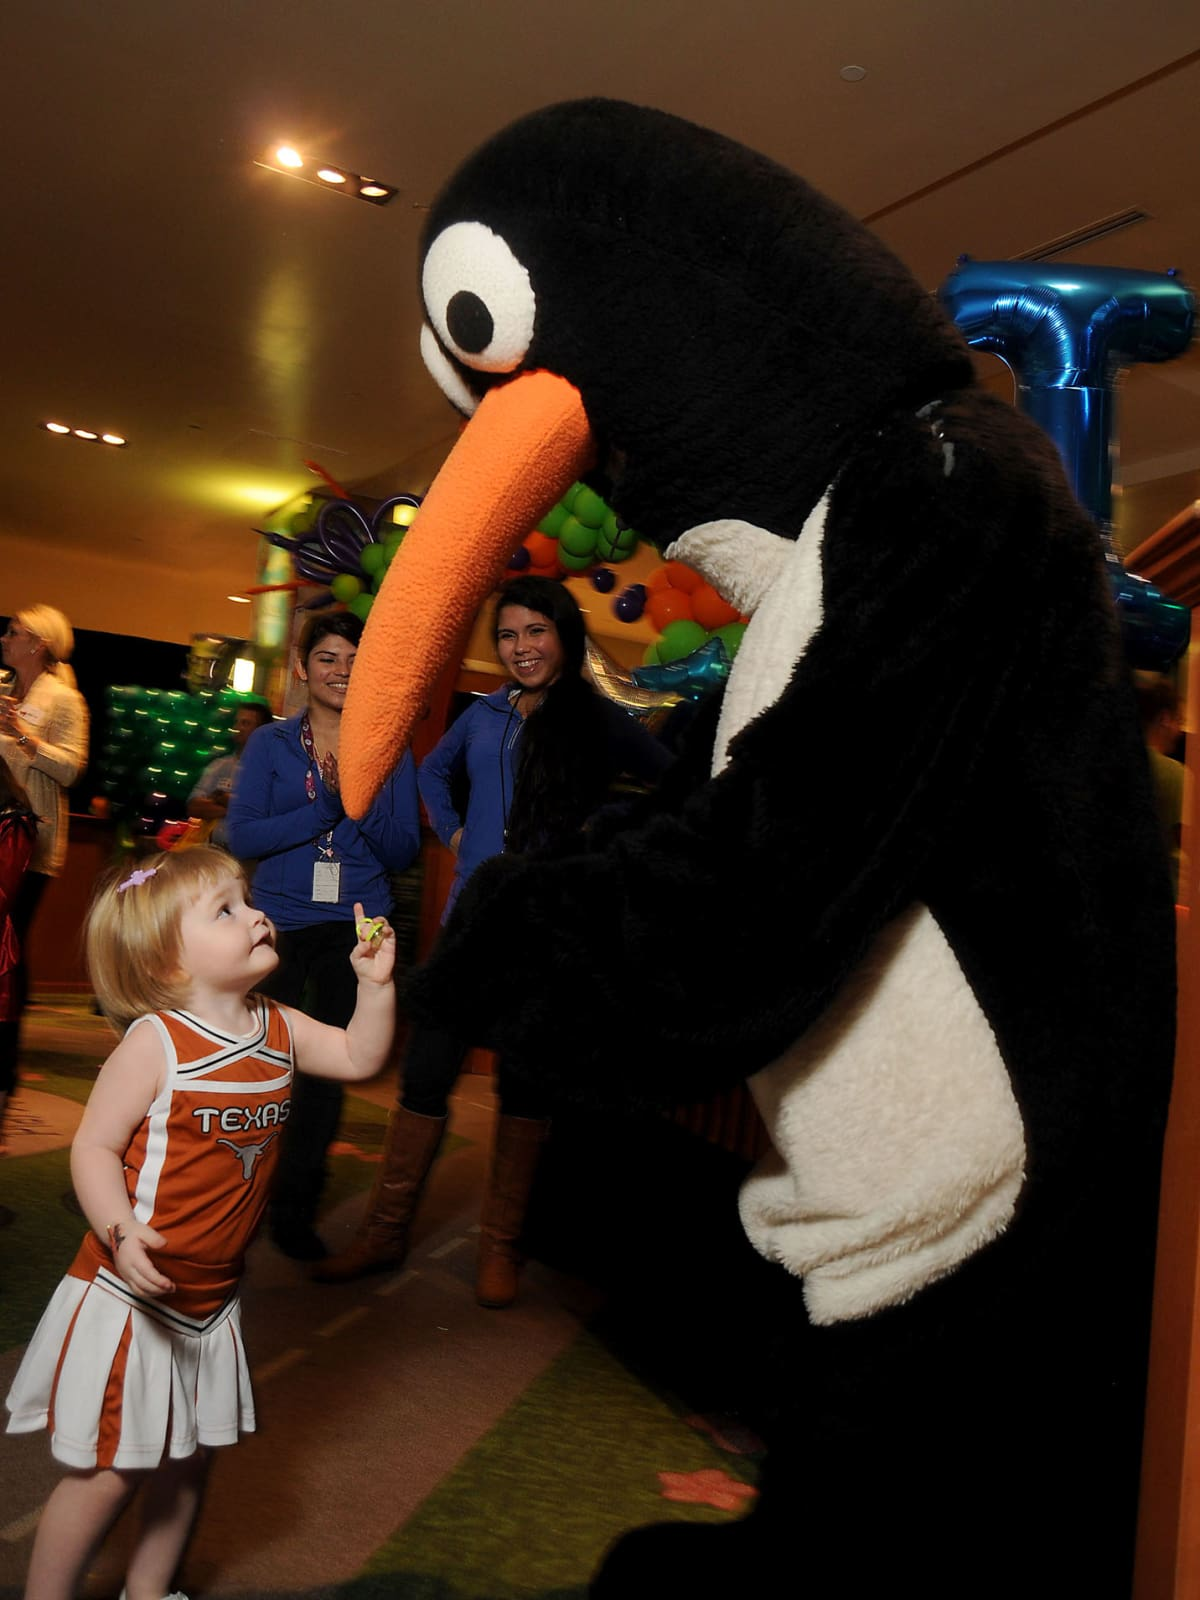 MD Anderson Halloween at the Galleria Emmy Wallace